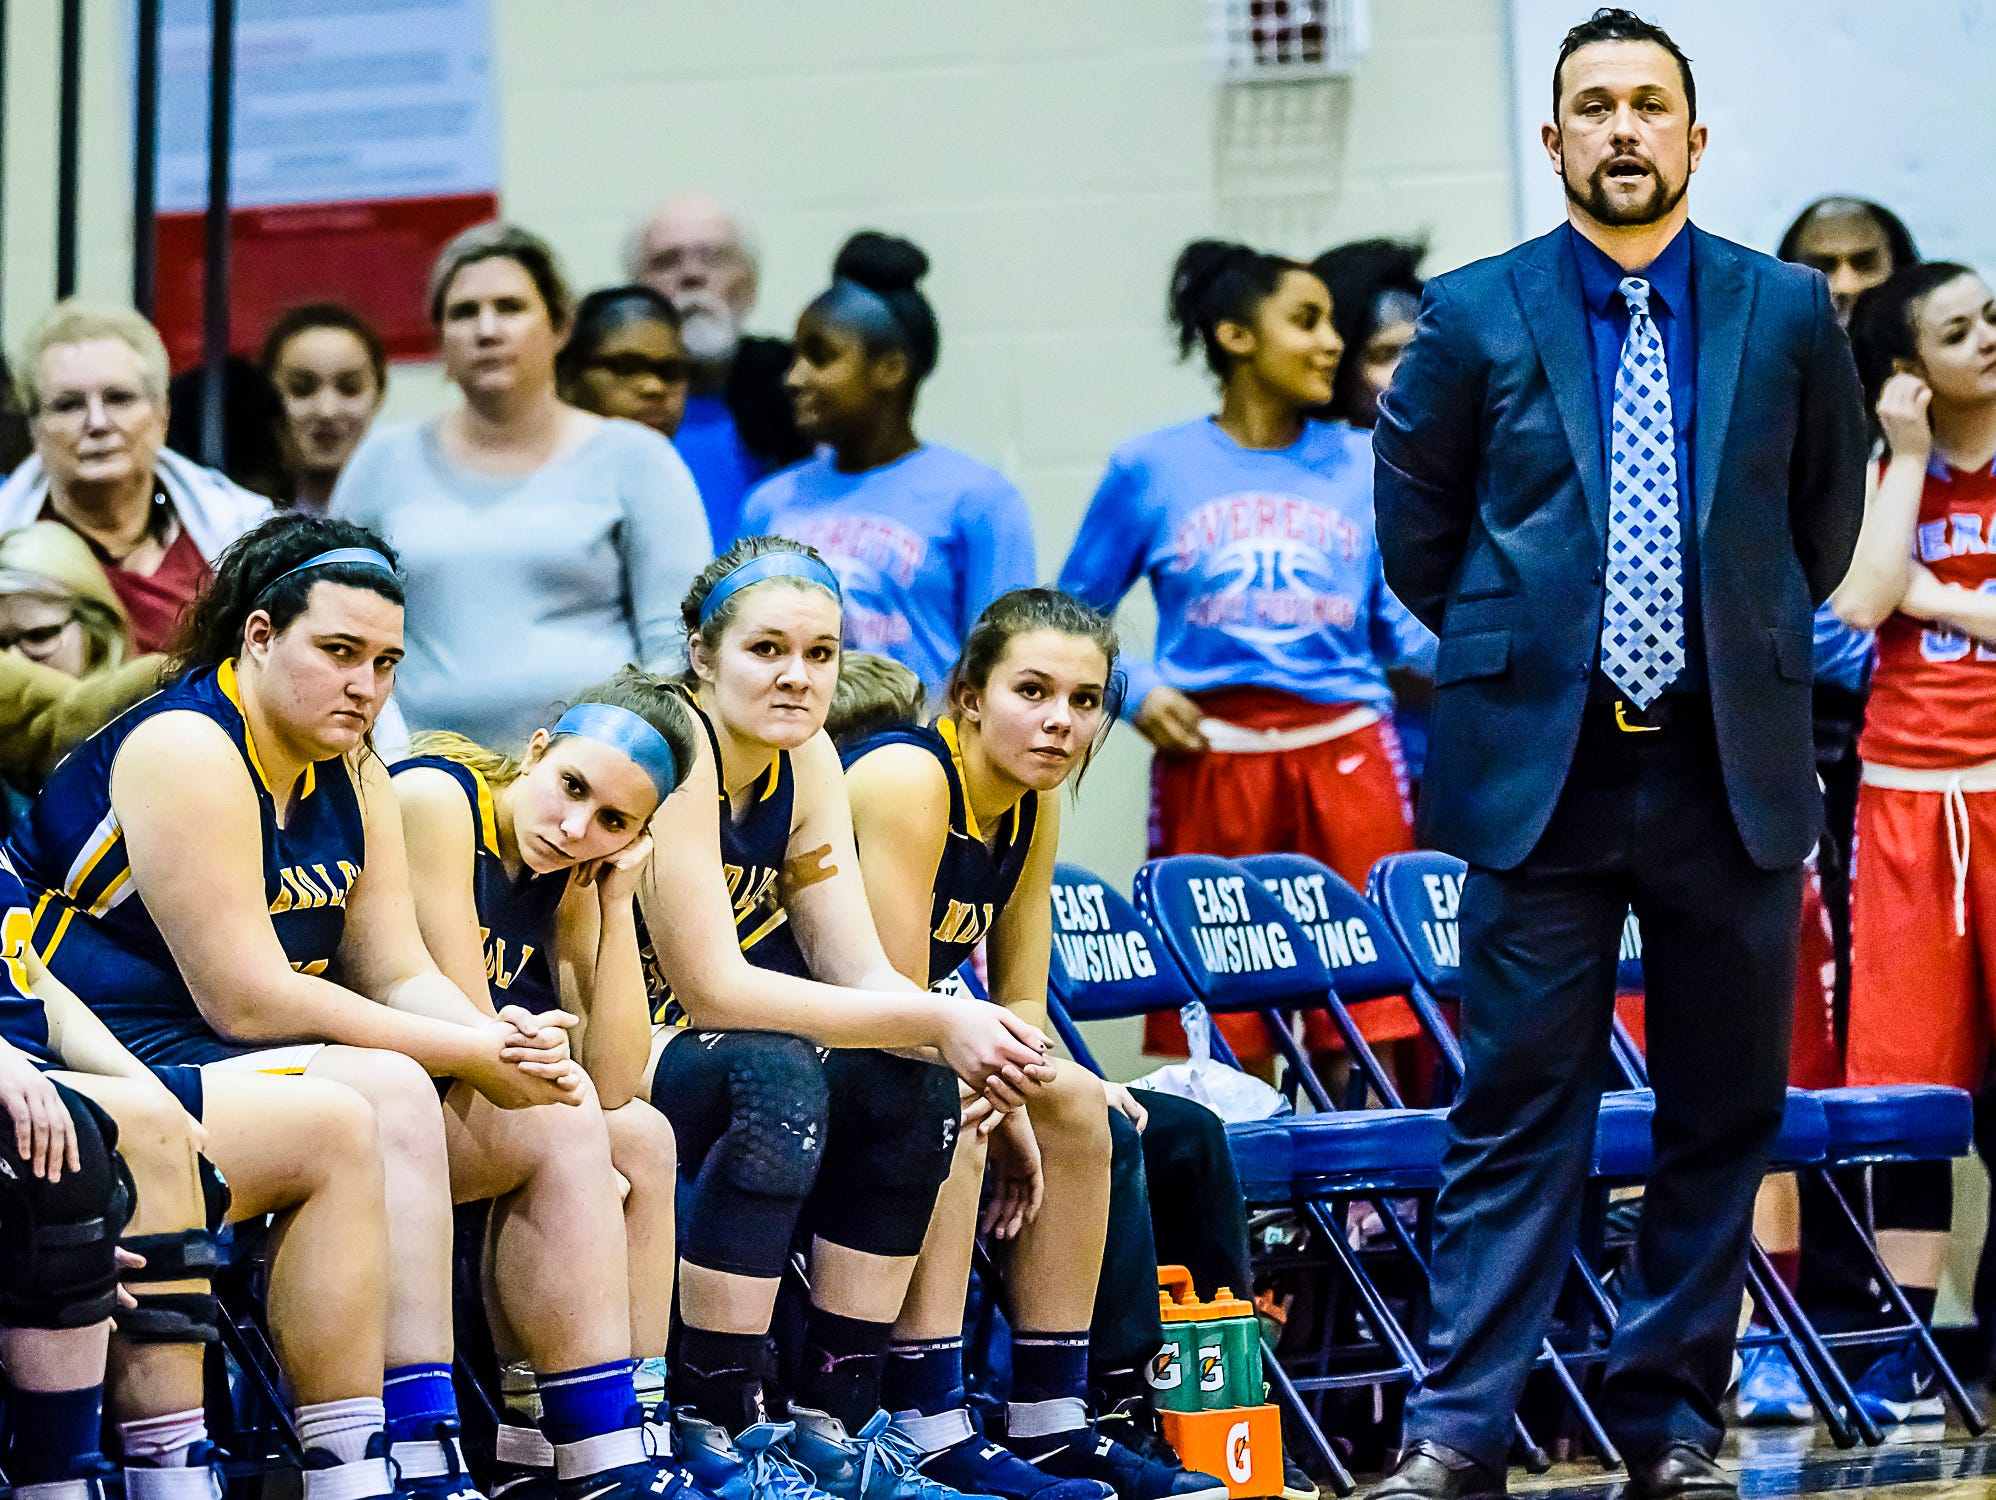 The Grand Ledge bench looks on in the last seconds of their district semifinal loss to East Lansing Wednesday March 1, 2017 at East Lansing High School. KEVIN W. FOWLER PHOTO